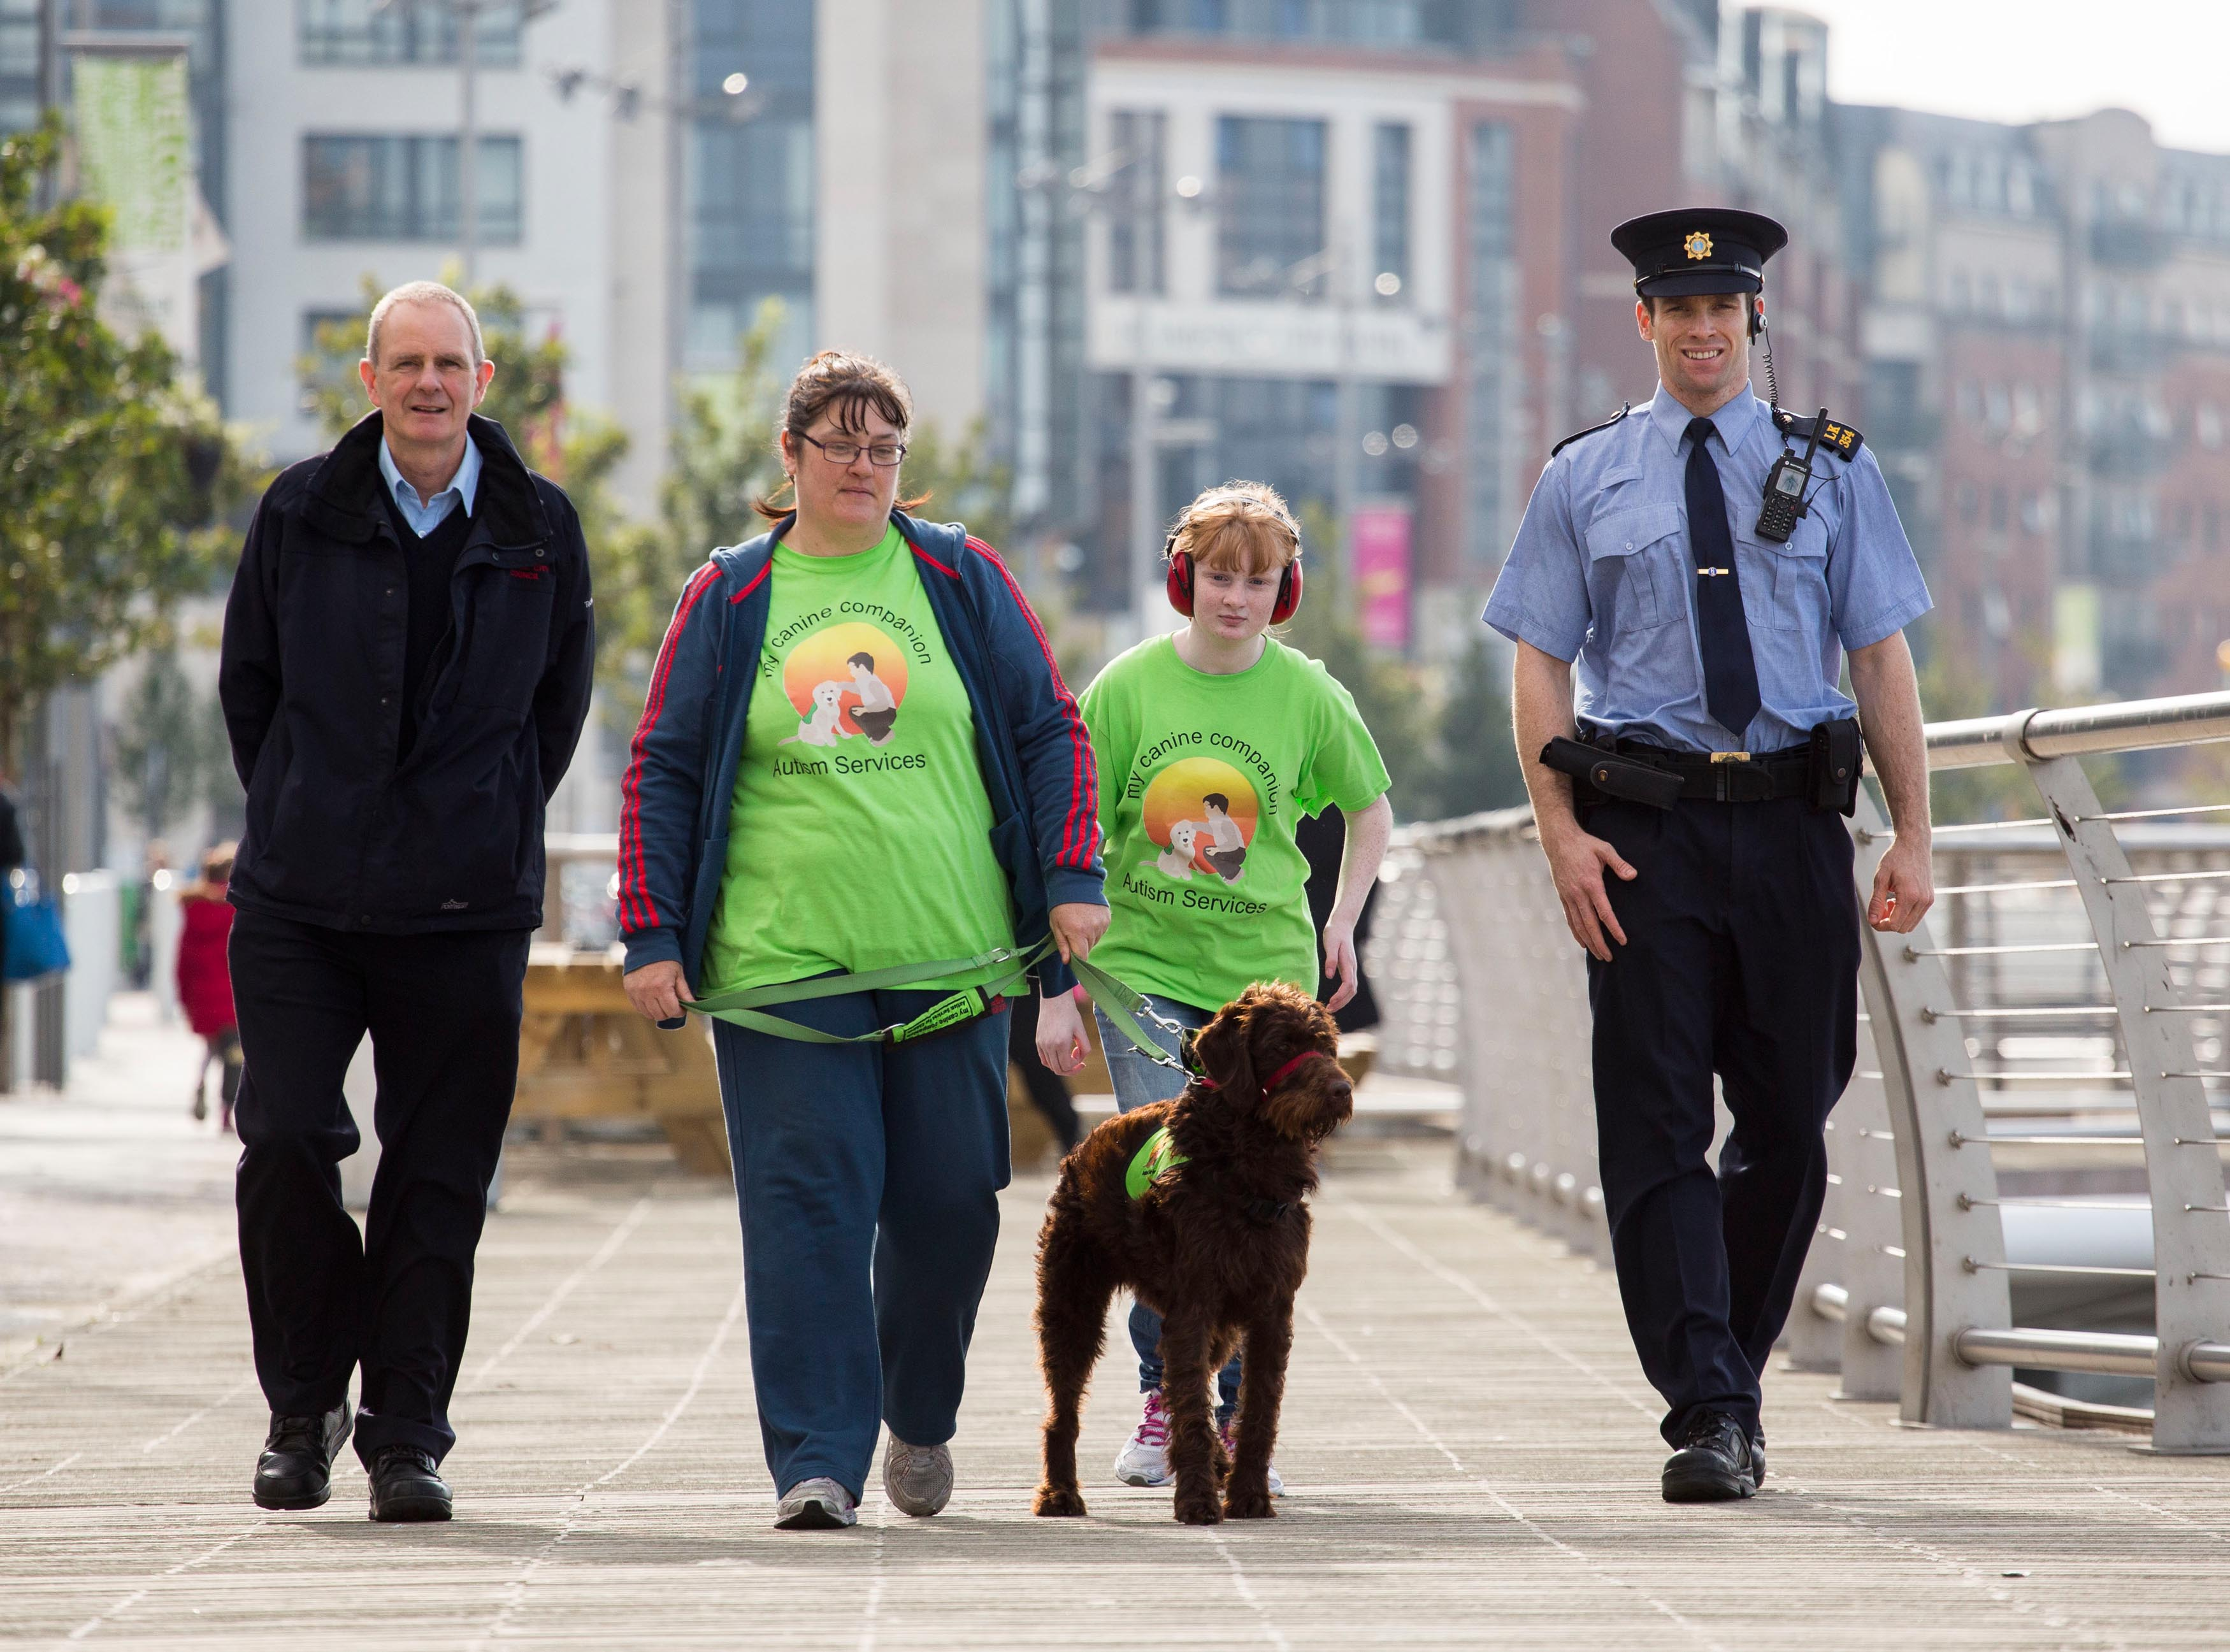 Helping to announce details of the campaign at Howleys Quay, Limerick were, Mike Walsh, Environmental Inspector Limerick City and County Council, Denise and Michaela Deegan with their dog Meggie and Garda Dave O'Connell. Picture: Alan Place.